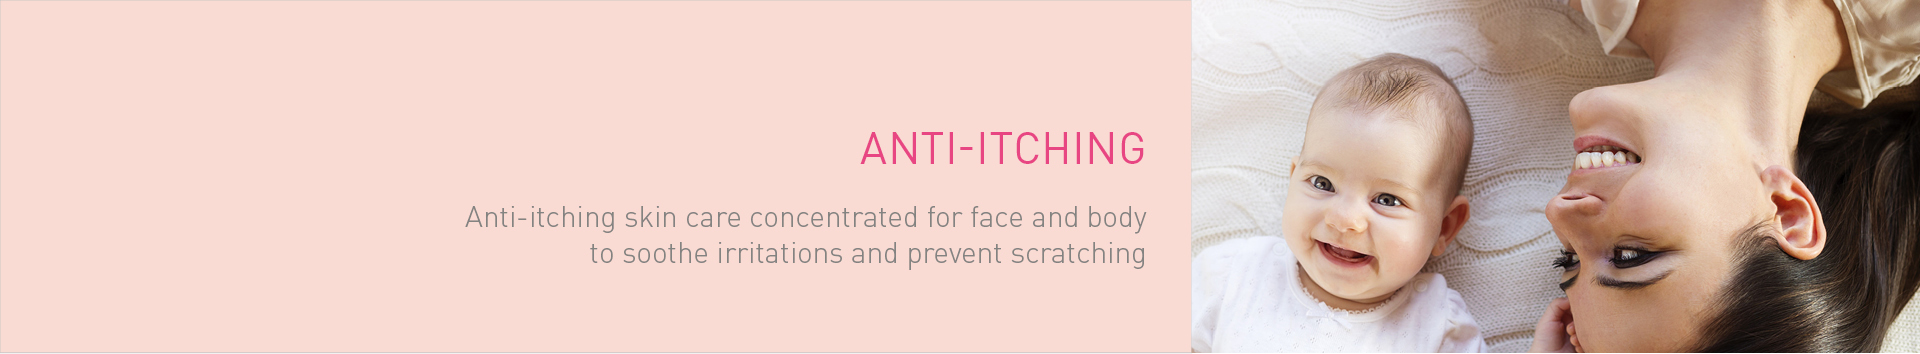 Anti-itching